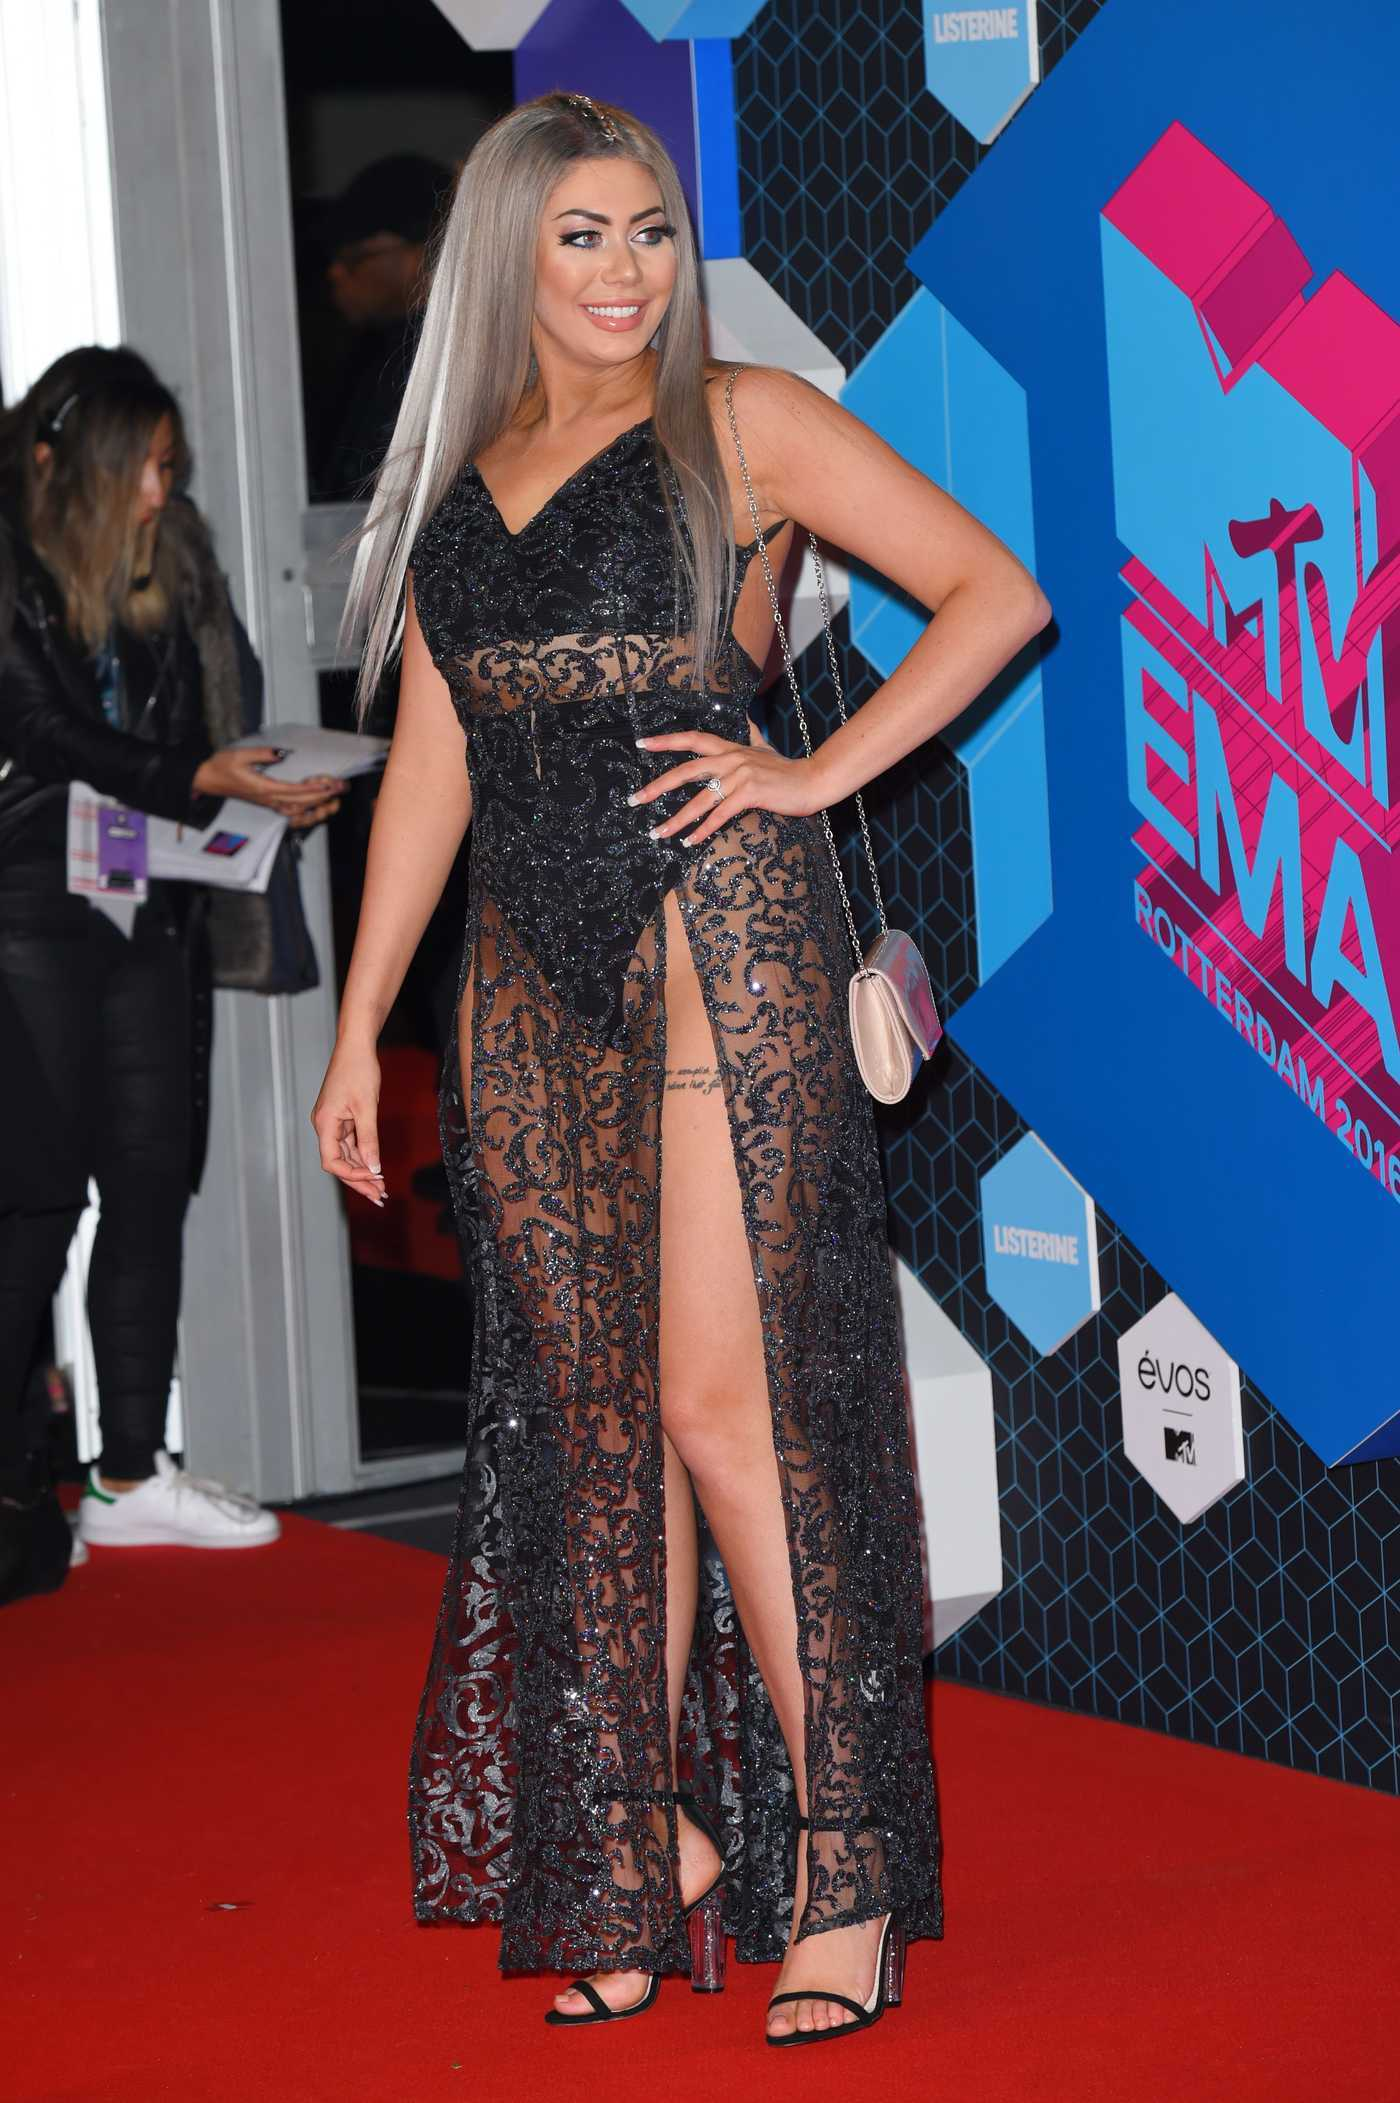 Chloe Ferry at the MTV Europe Music Awards in Rotterdam 11/06/2016